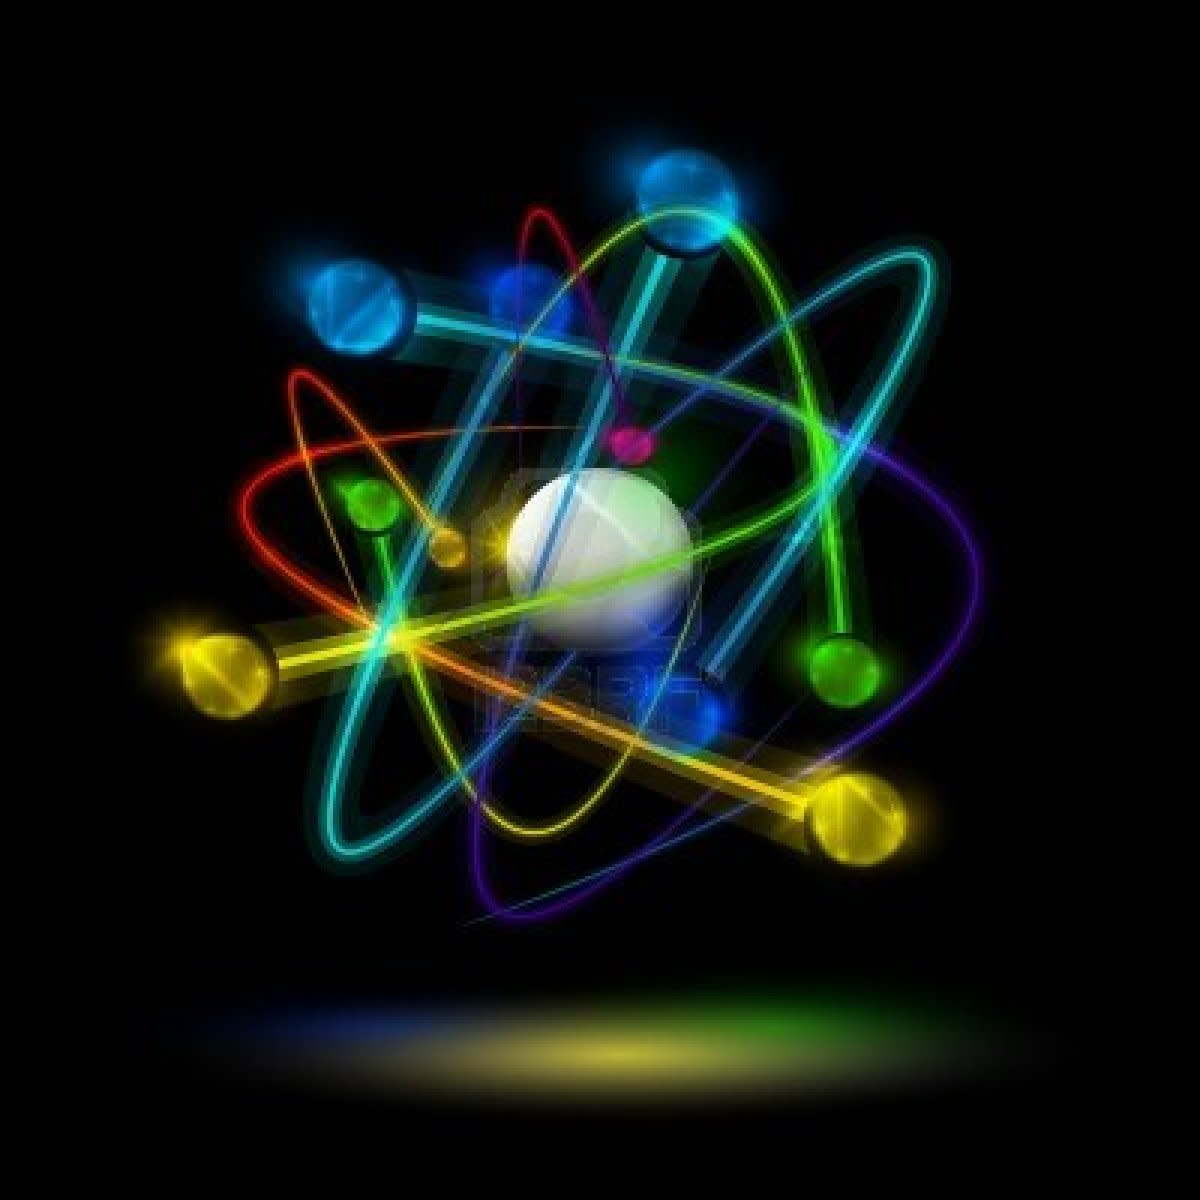 Atomic Nucleus Wallpaper PC Most Beautiful